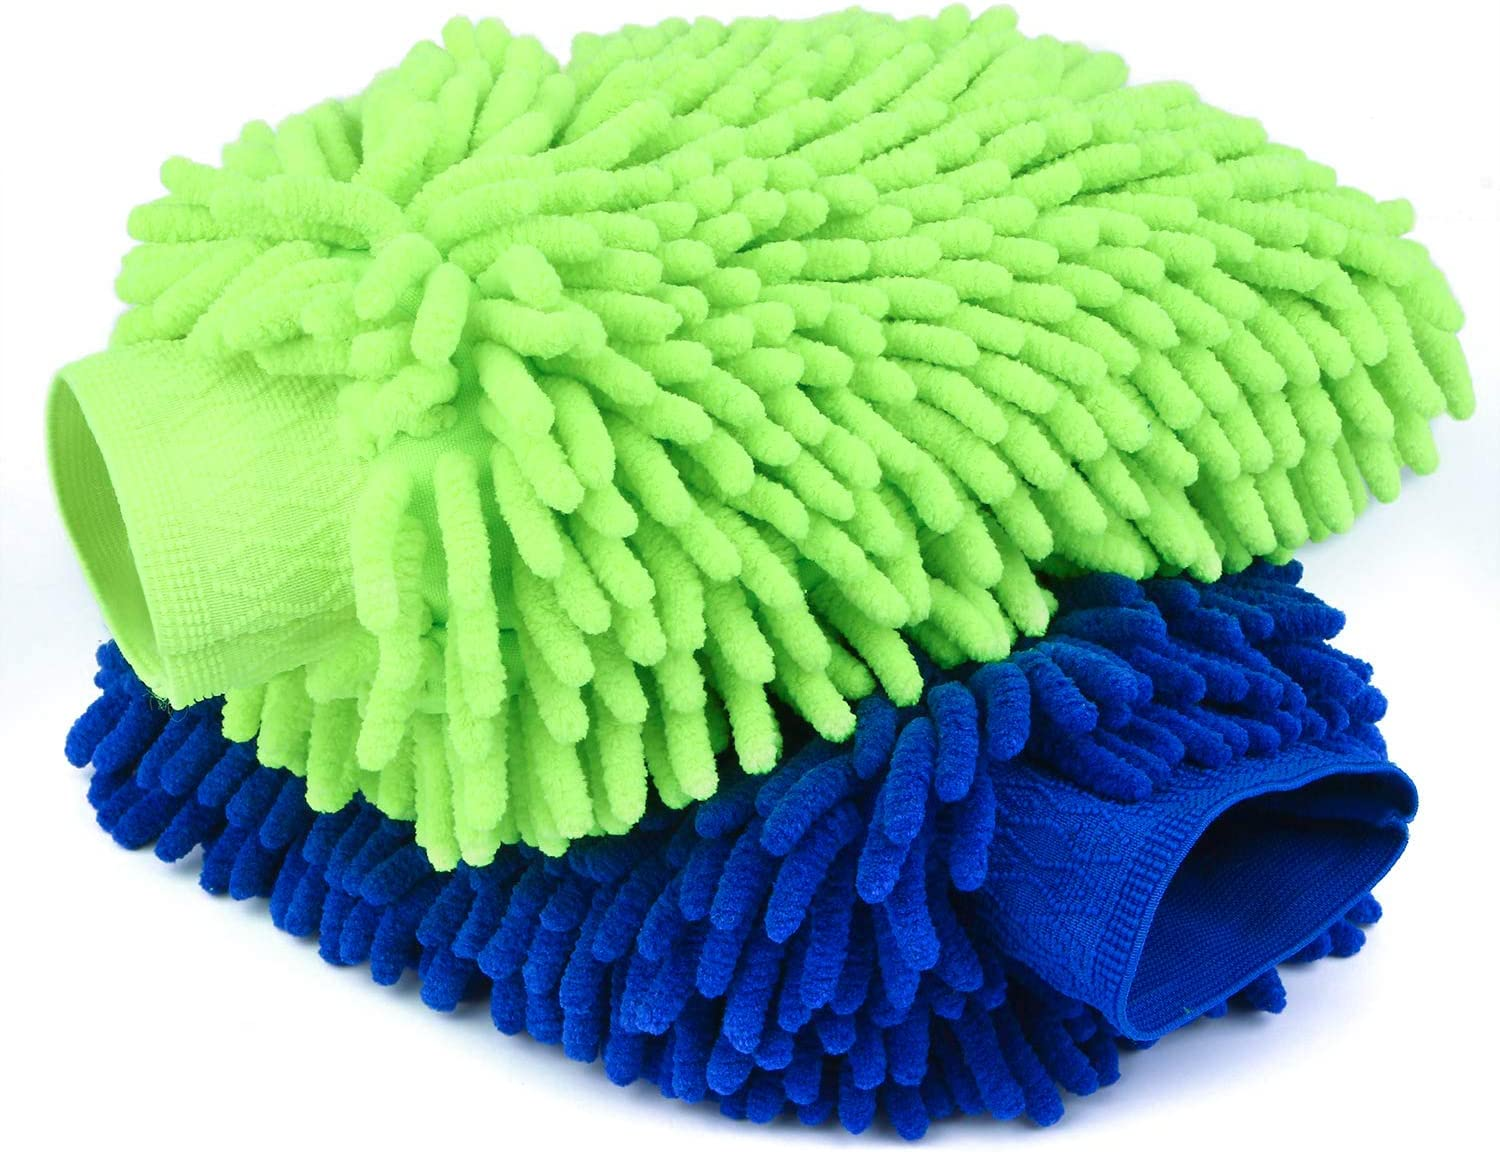 Car Wash Mitt 2 Pack - 12 X 9 Inch Extra Large Size Clean Tools Kits- Premium Chenille Microfiber Winter Waterproof Cleaning Mitts - Washing Glove with Lint Free & Scratch Free